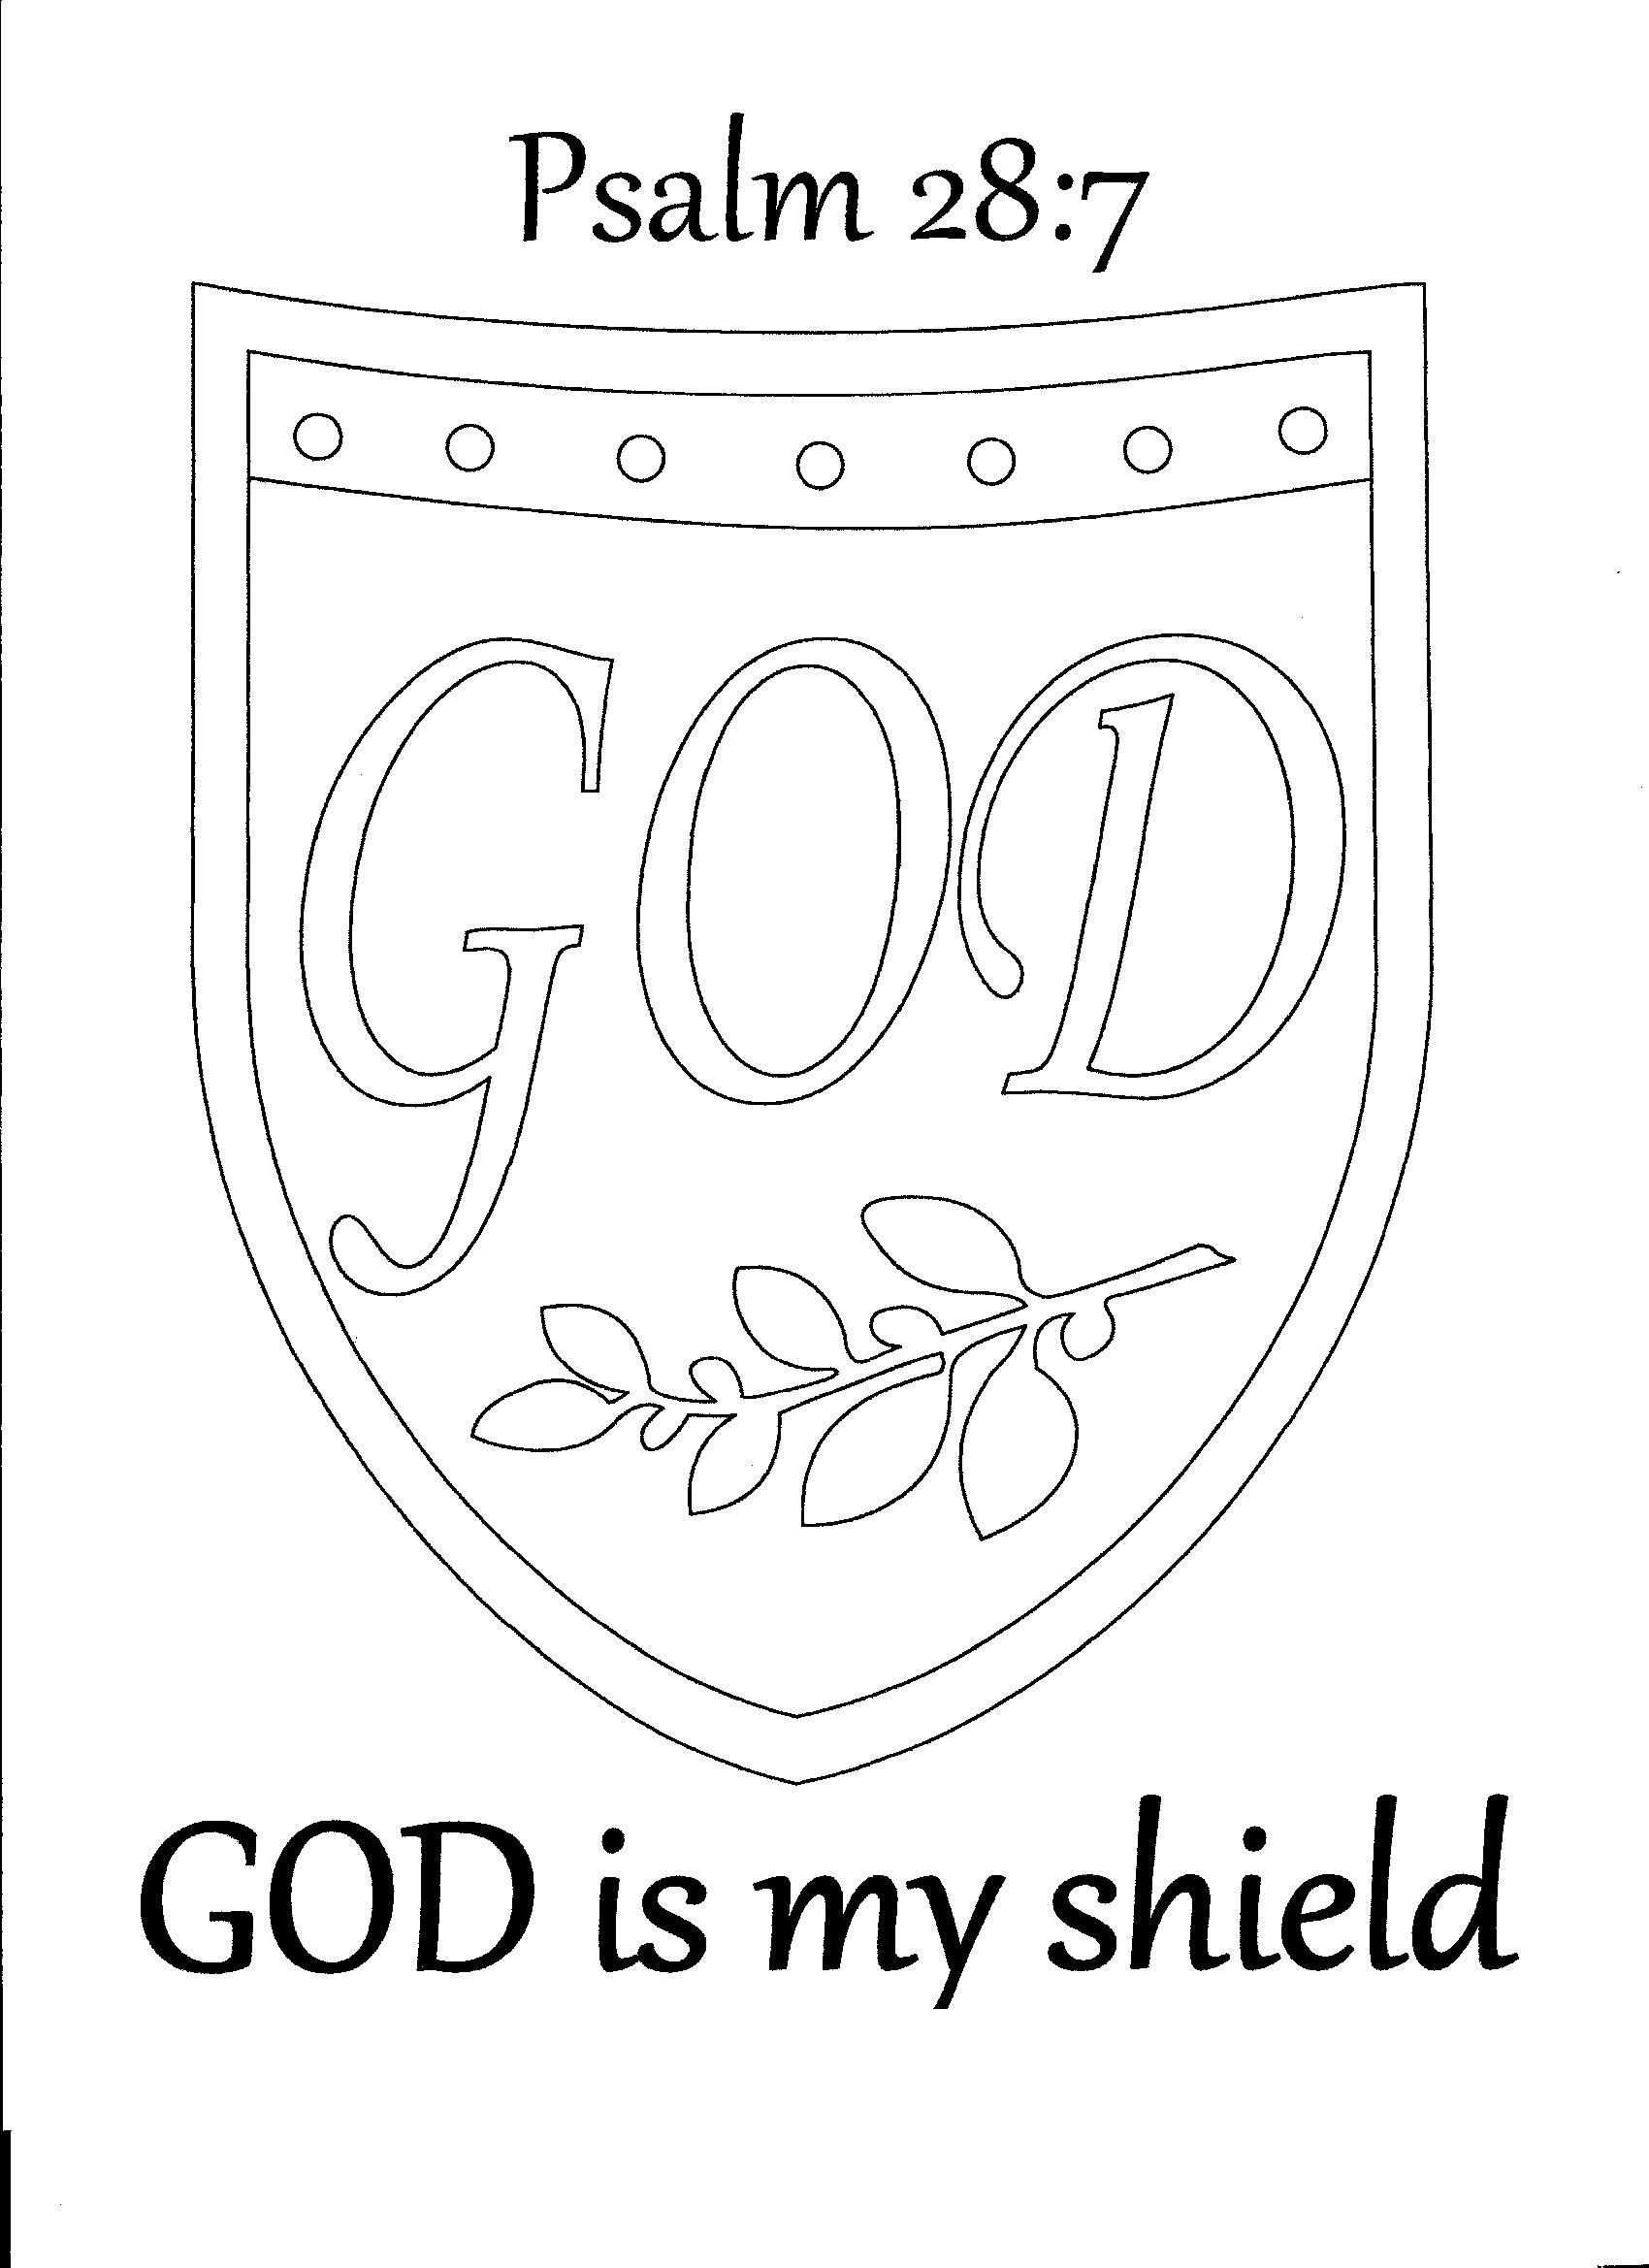 God is my shield. Psalm 28:7 coloring page.